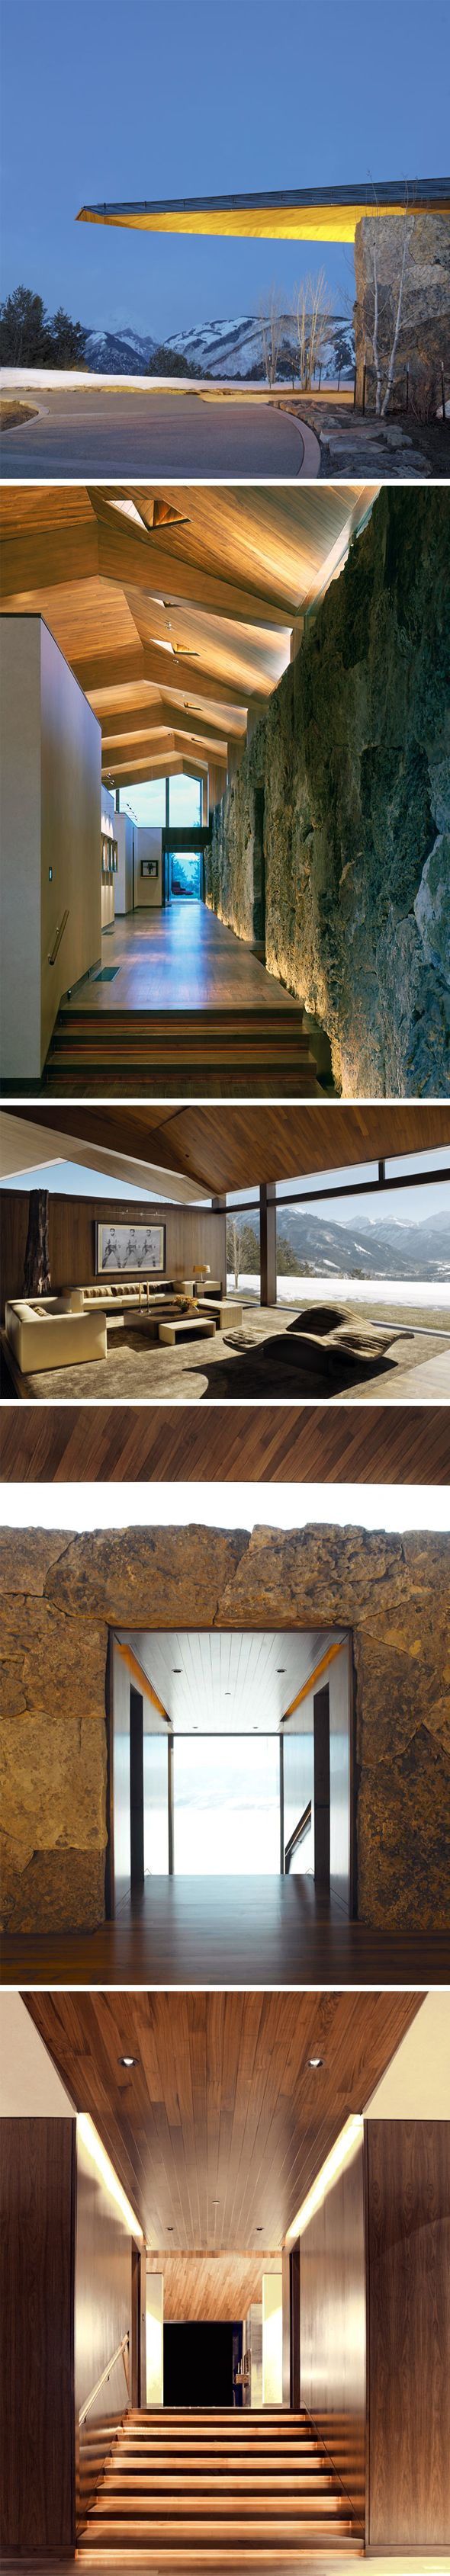 Wildcat Ridge Residence by Voorsanger Architects (Colorado). I love the uplighting in the second and fifth images; it gives otherwise stagnant expanses of wood and stone a lot of breathing room.